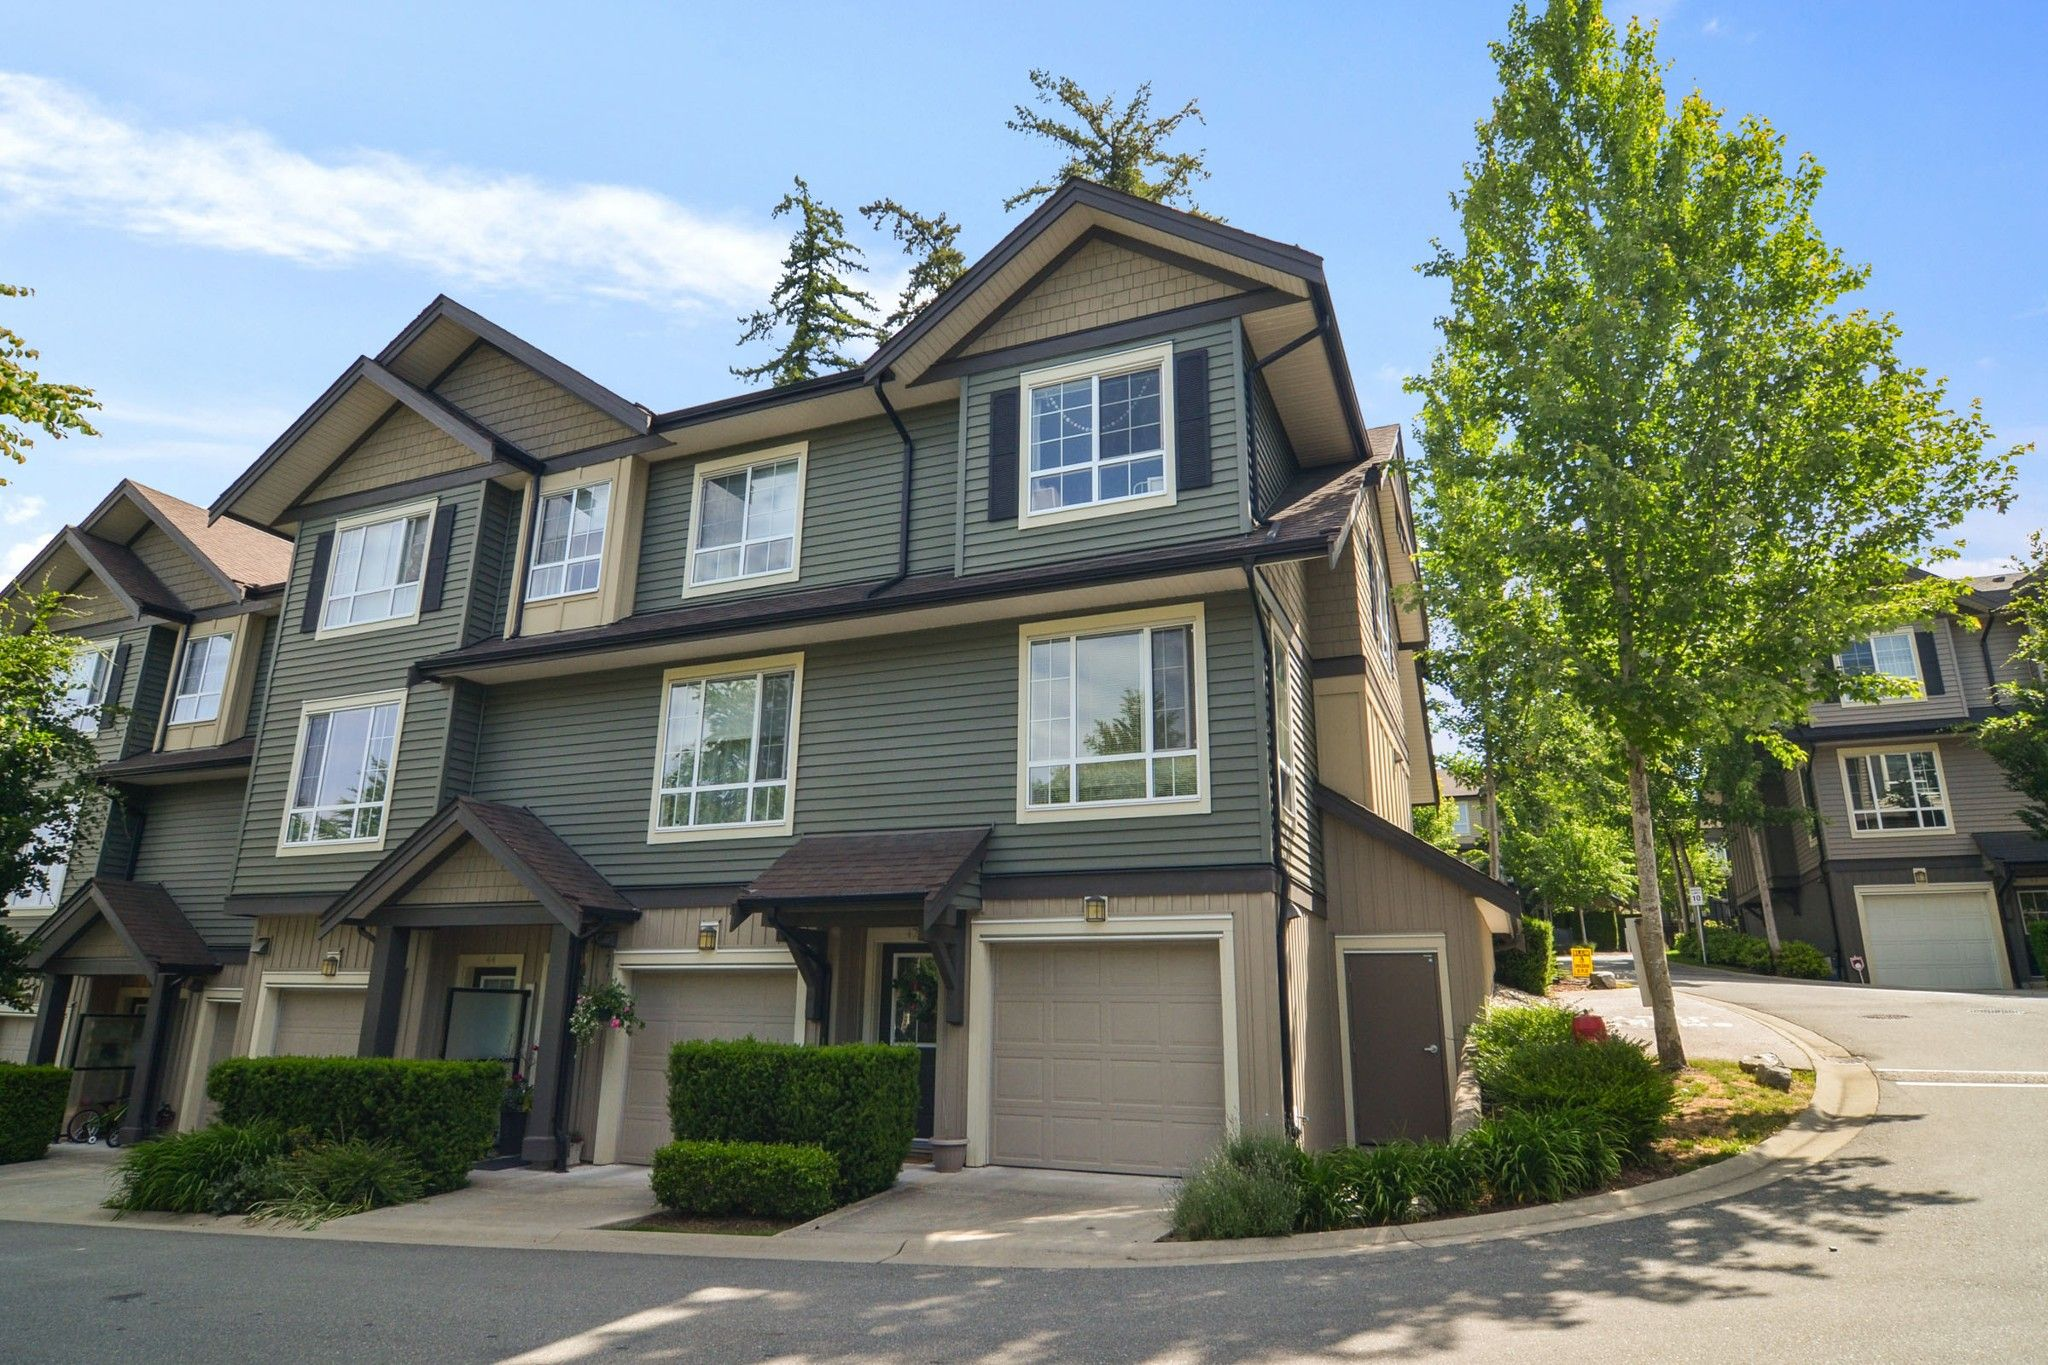 """Main Photo: 42 4967 220 Street in Langley: Murrayville Townhouse for sale in """"Winchester Estates"""" : MLS®# R2592312"""